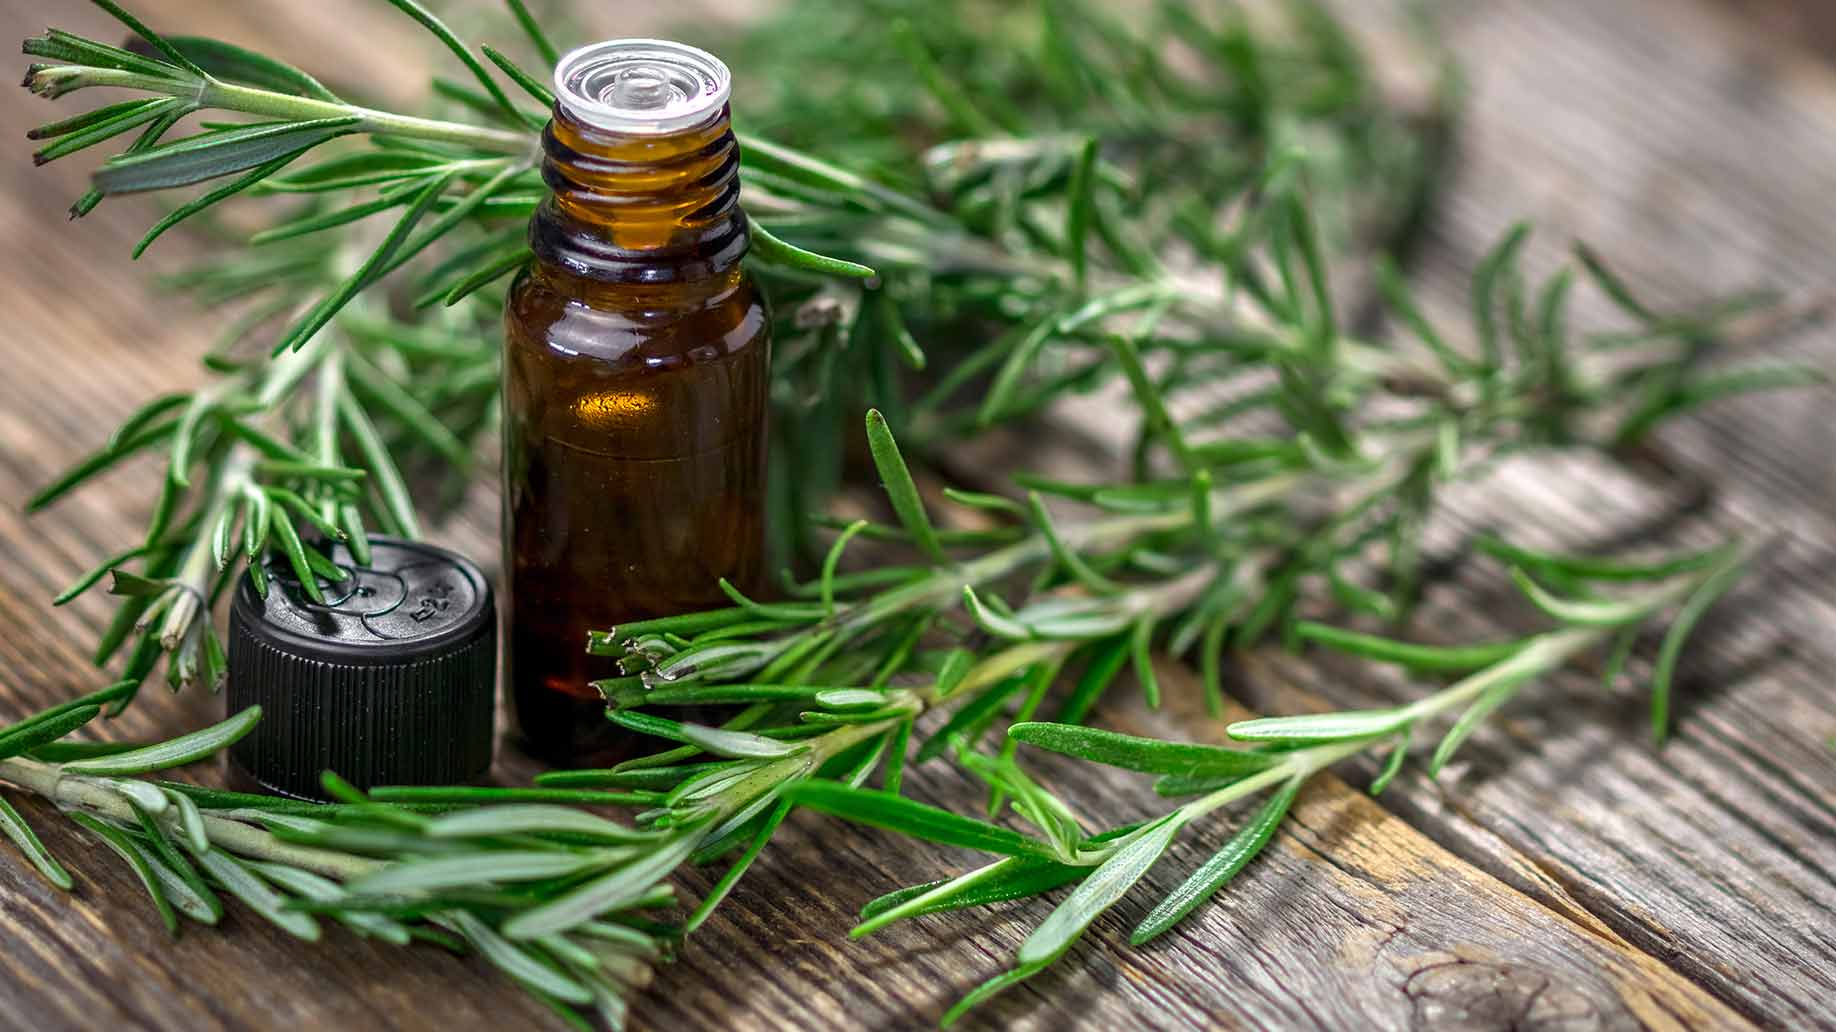 rosemary leaves needles oil shampoo ingredient hair growth balding scalp